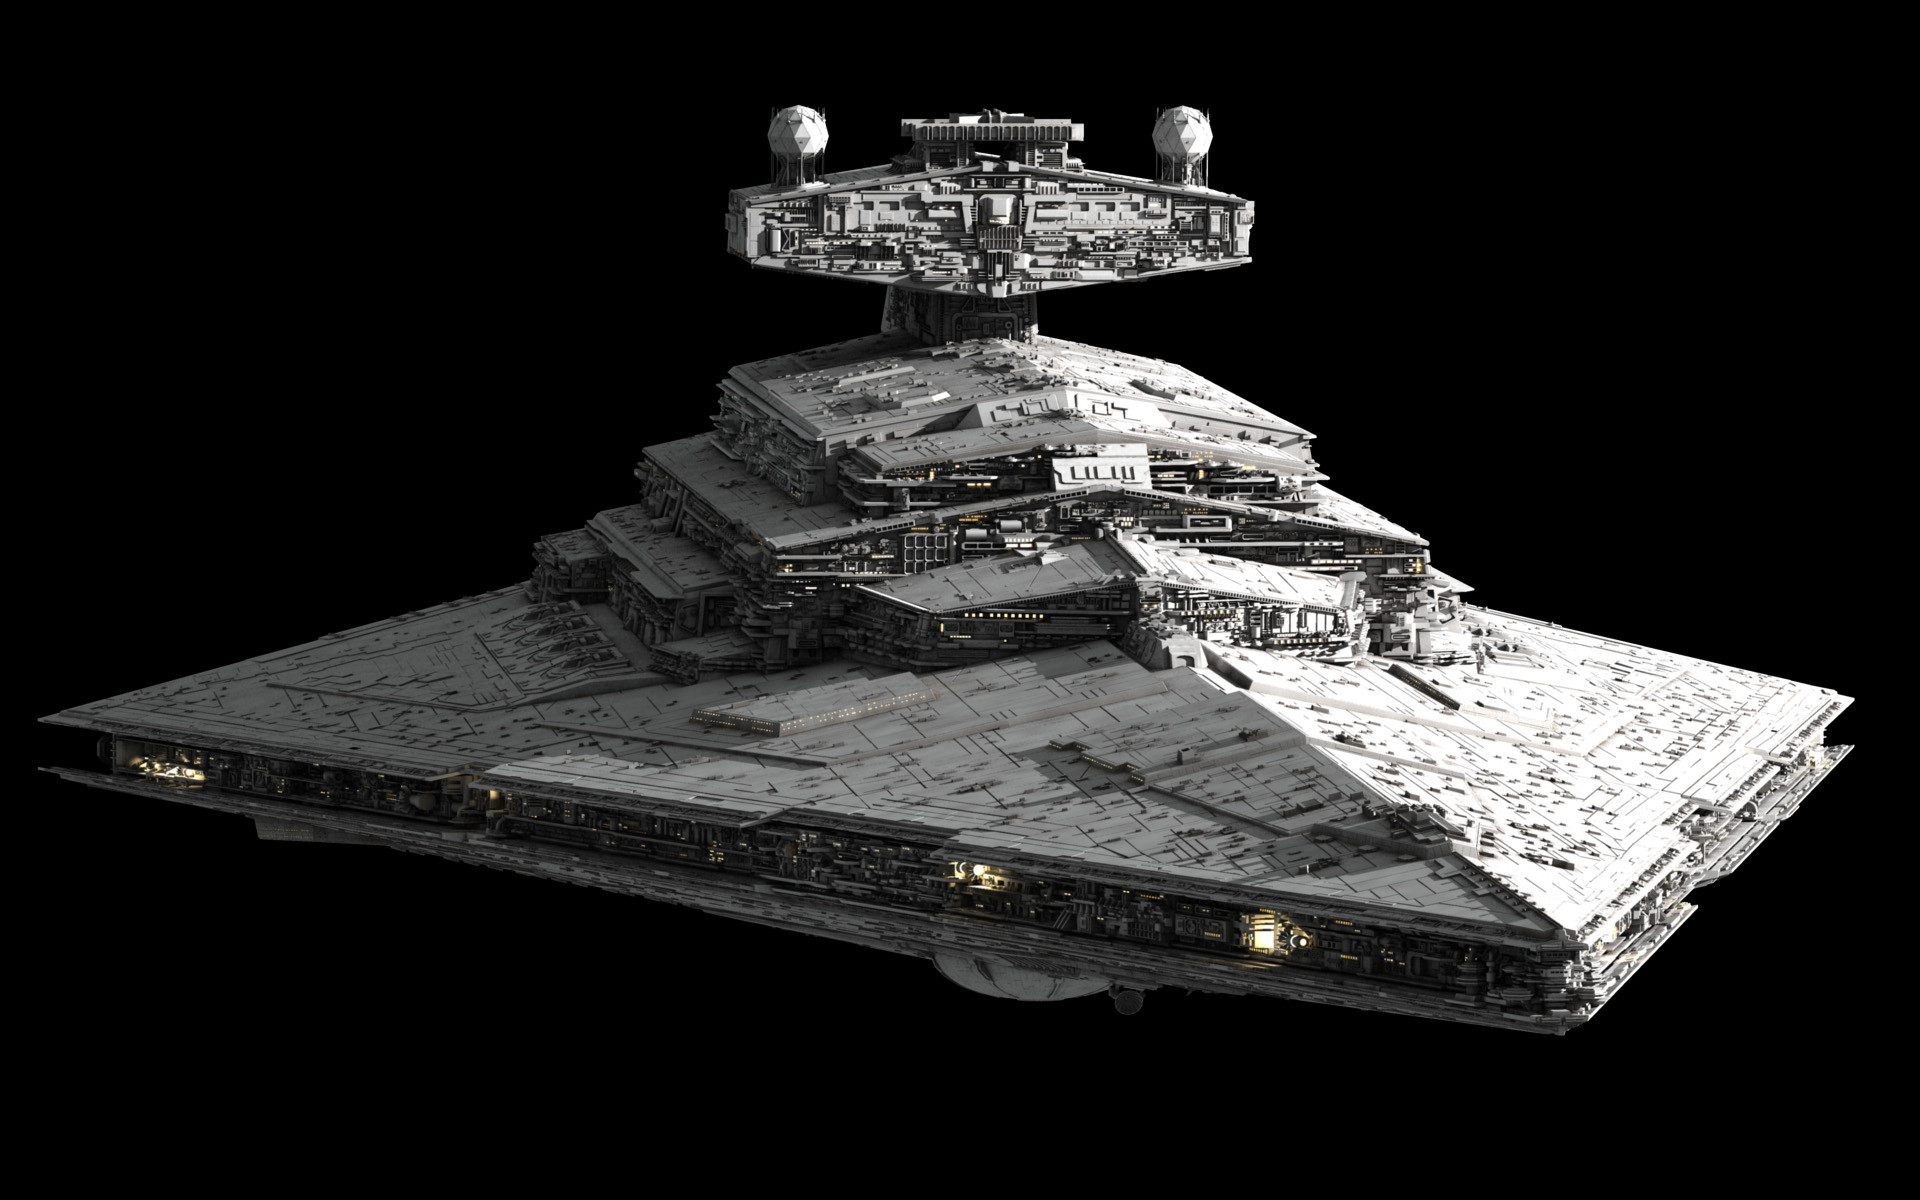 1920x1200 Imperial Star Destroyer built by Ansel Hsiao (Fractalsponge .